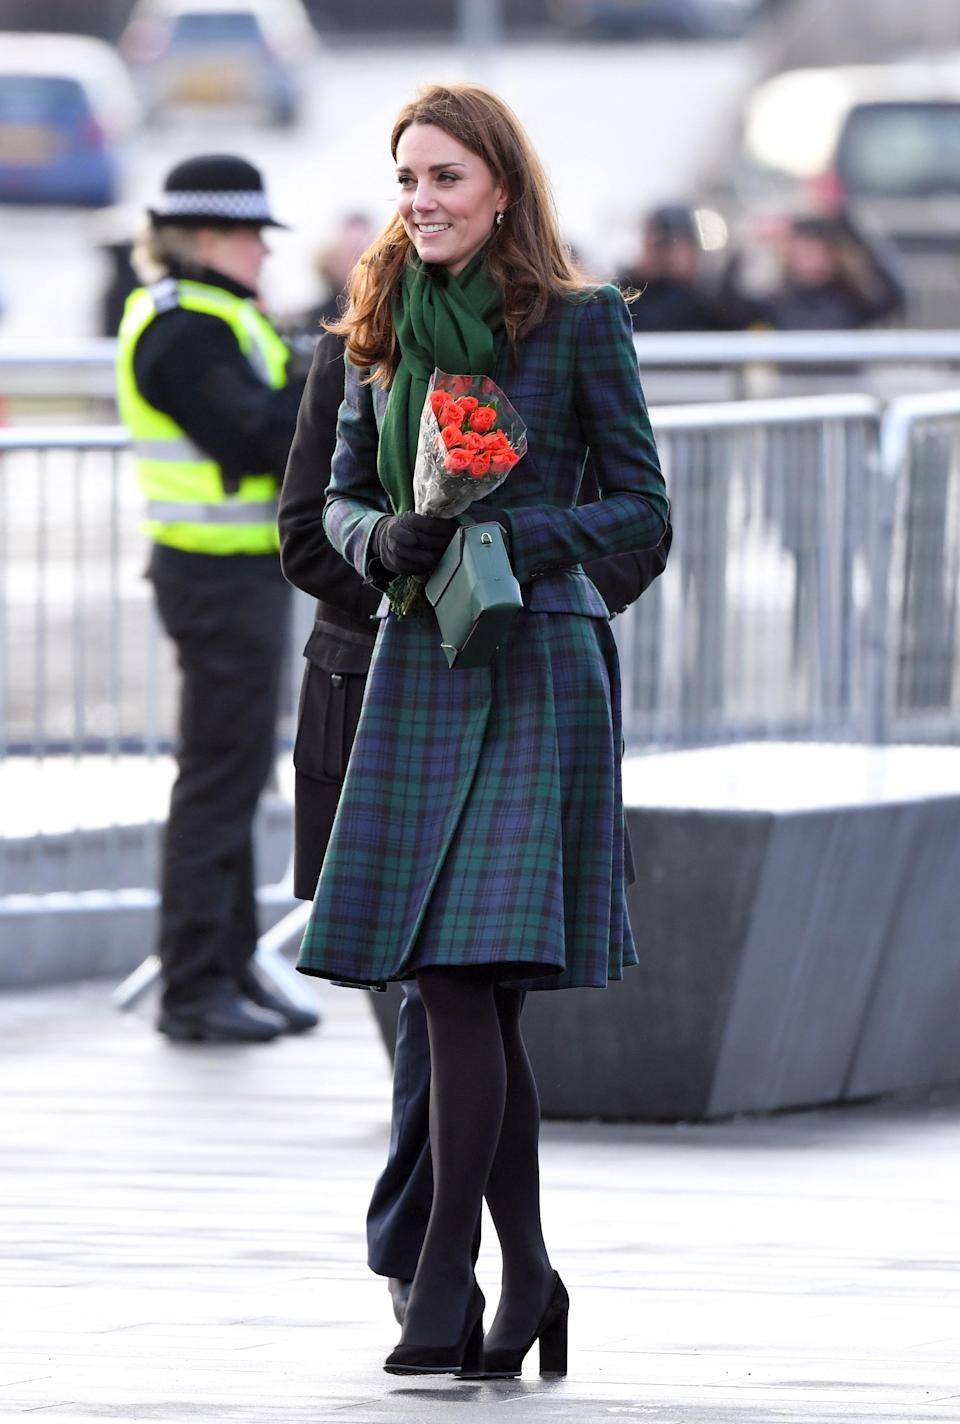 To open the V&A Dundee, the Duchess of Cambridge flew the Scottish flag in an Alexander McQueen Black Watch tartan coat dress – she first wore the look on St. Andrew's Day in November 2012. Black Tod's pumps and a Manu Atelier handbag finished the ensemble. [Photo: Getty]